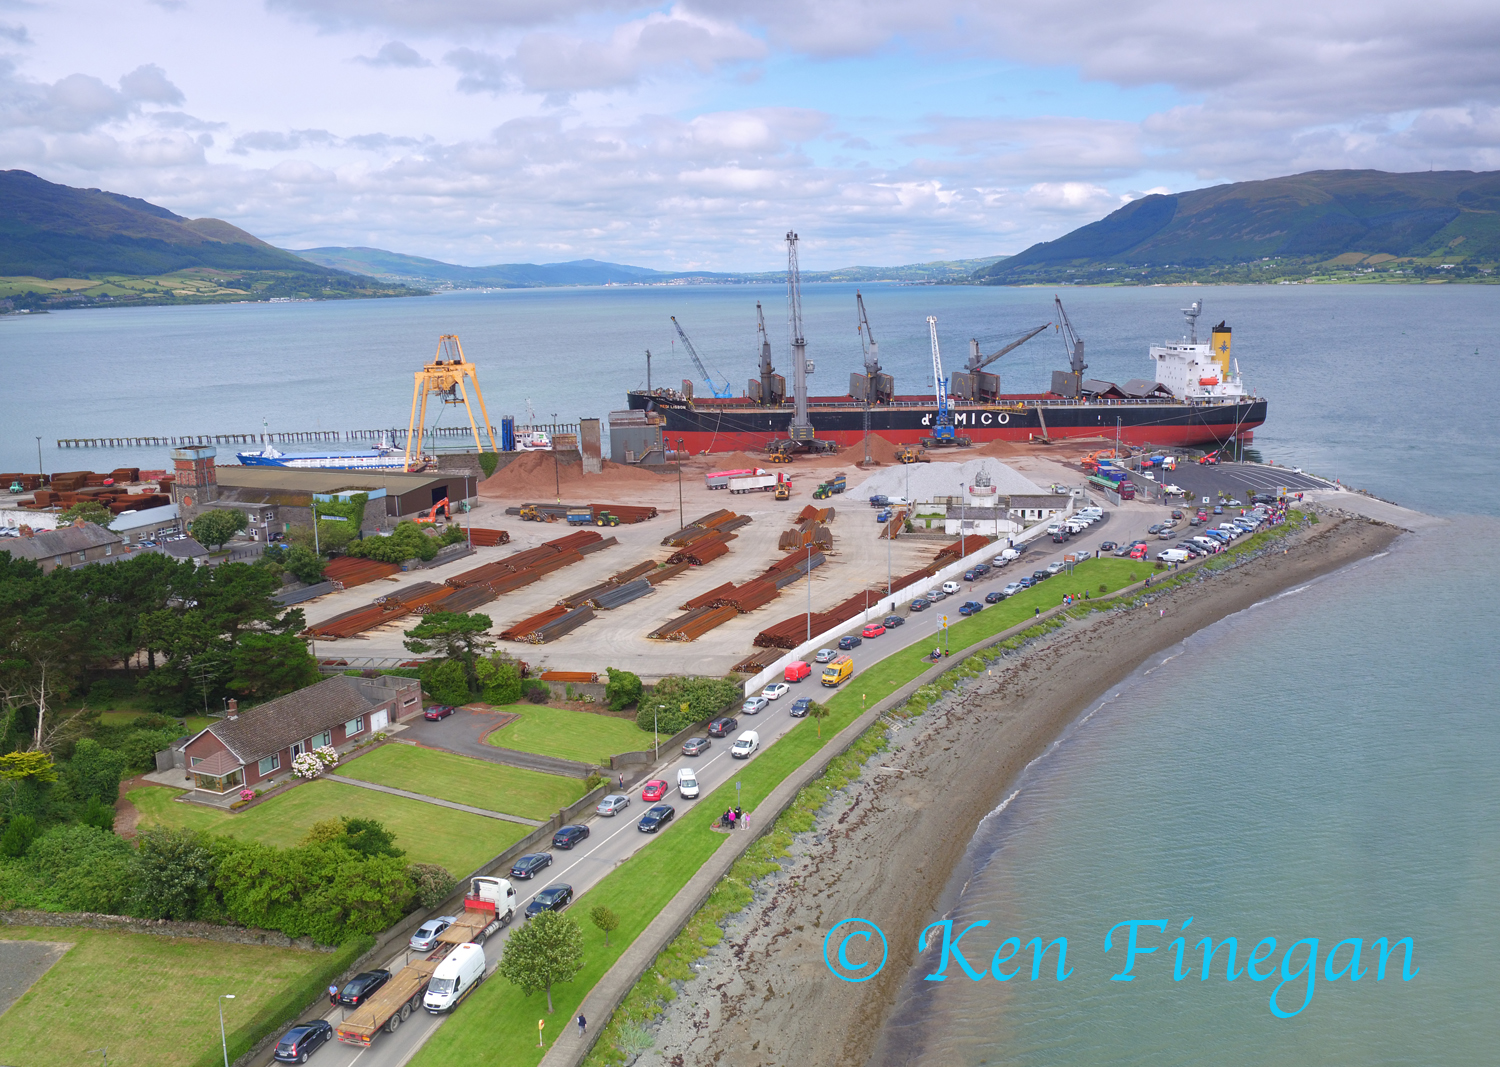 Carlingford Ferry04